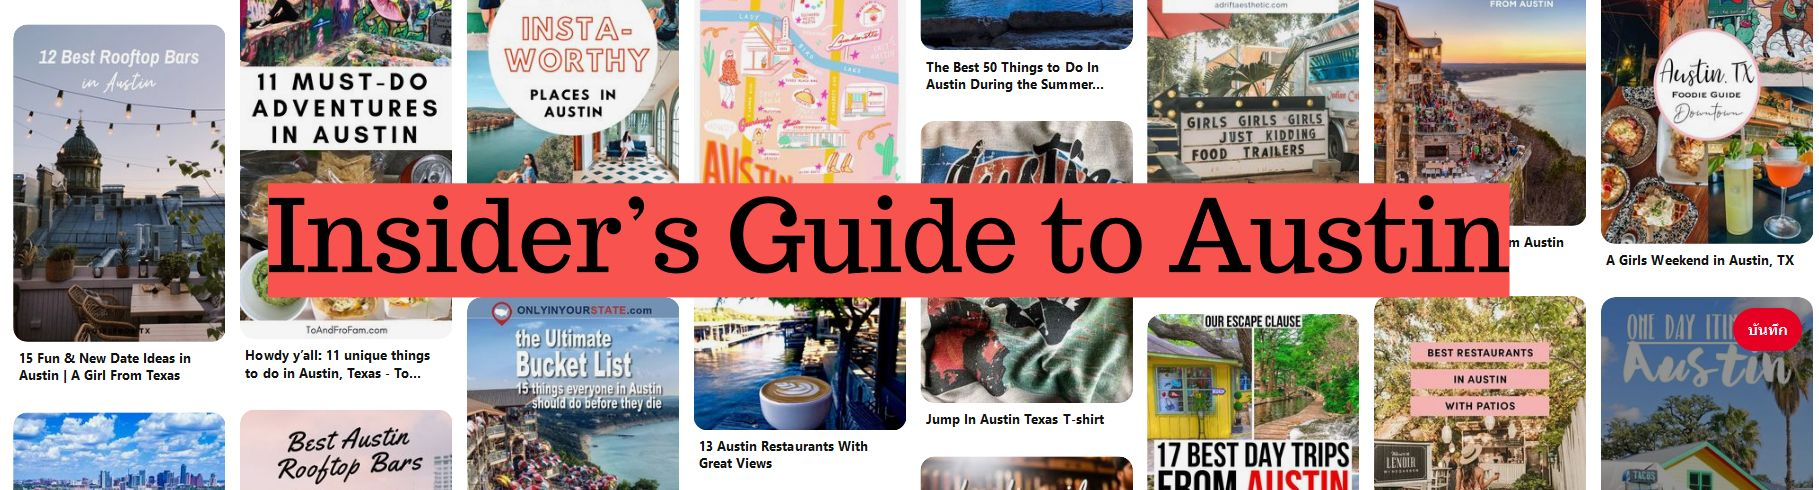 Insider's Guide to Austin